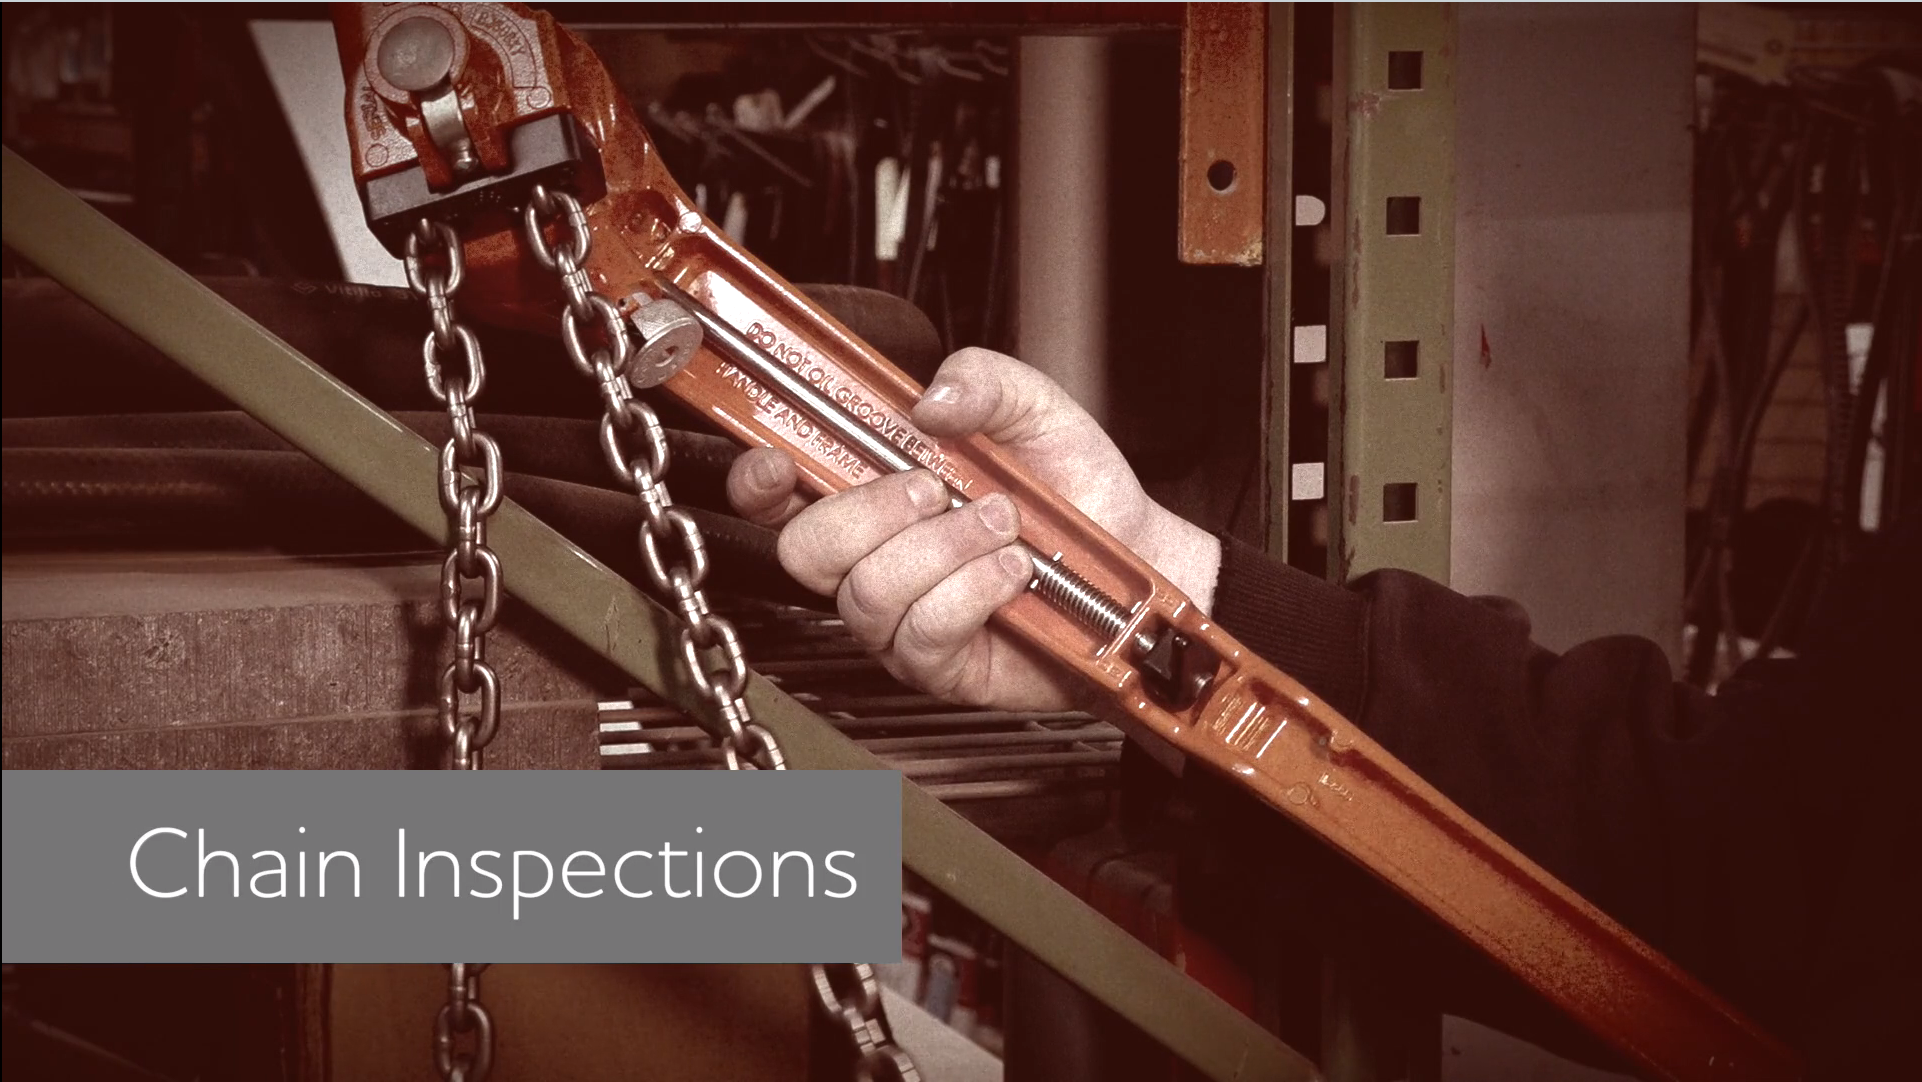 Chain Inspections